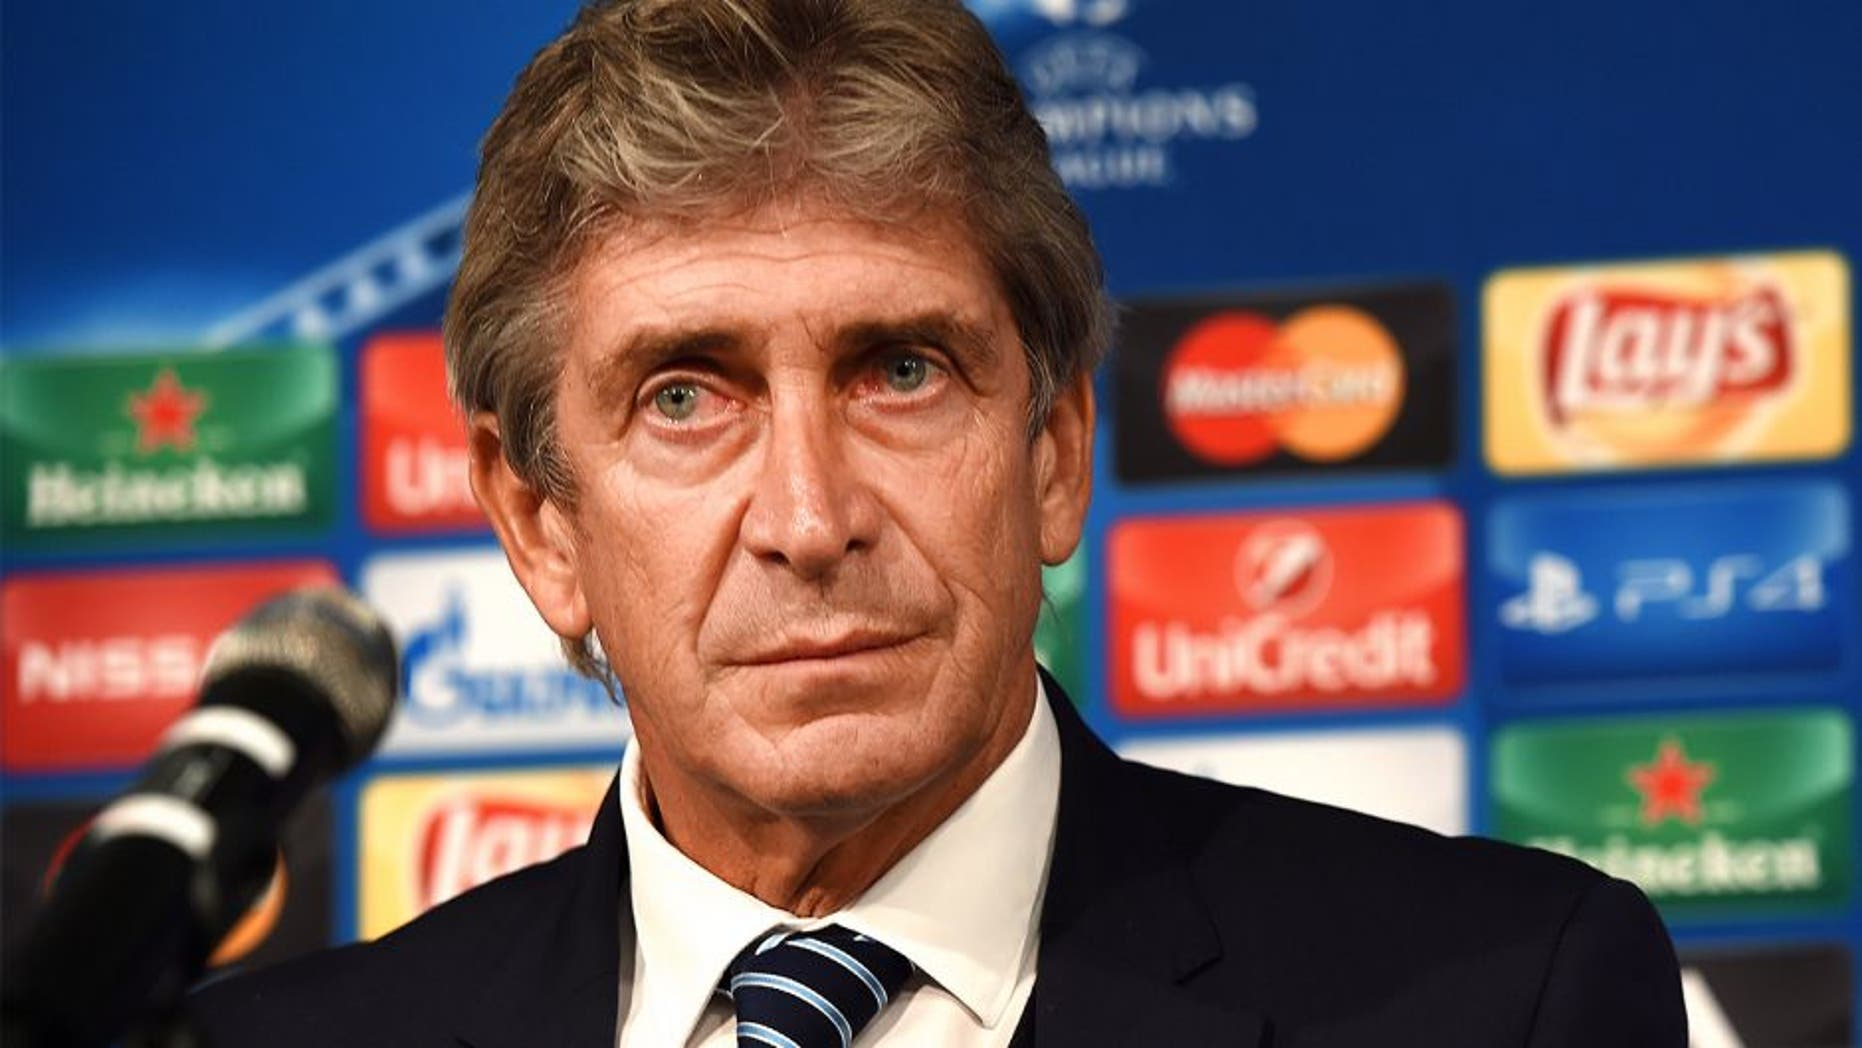 Manchester´s Chilean head coach Manuel Pellegrini attends a press conference on the eve of the Group D, first-leg UEFA Champions League football match Borussia Moenchengladbach vs Manchester City FC in Moenchengladbach, western Germany on September 29, 2015. AFP PHOTO / PATRIK STOLLARZ (Photo credit should read PATRIK STOLLARZ/AFP/Getty Images)